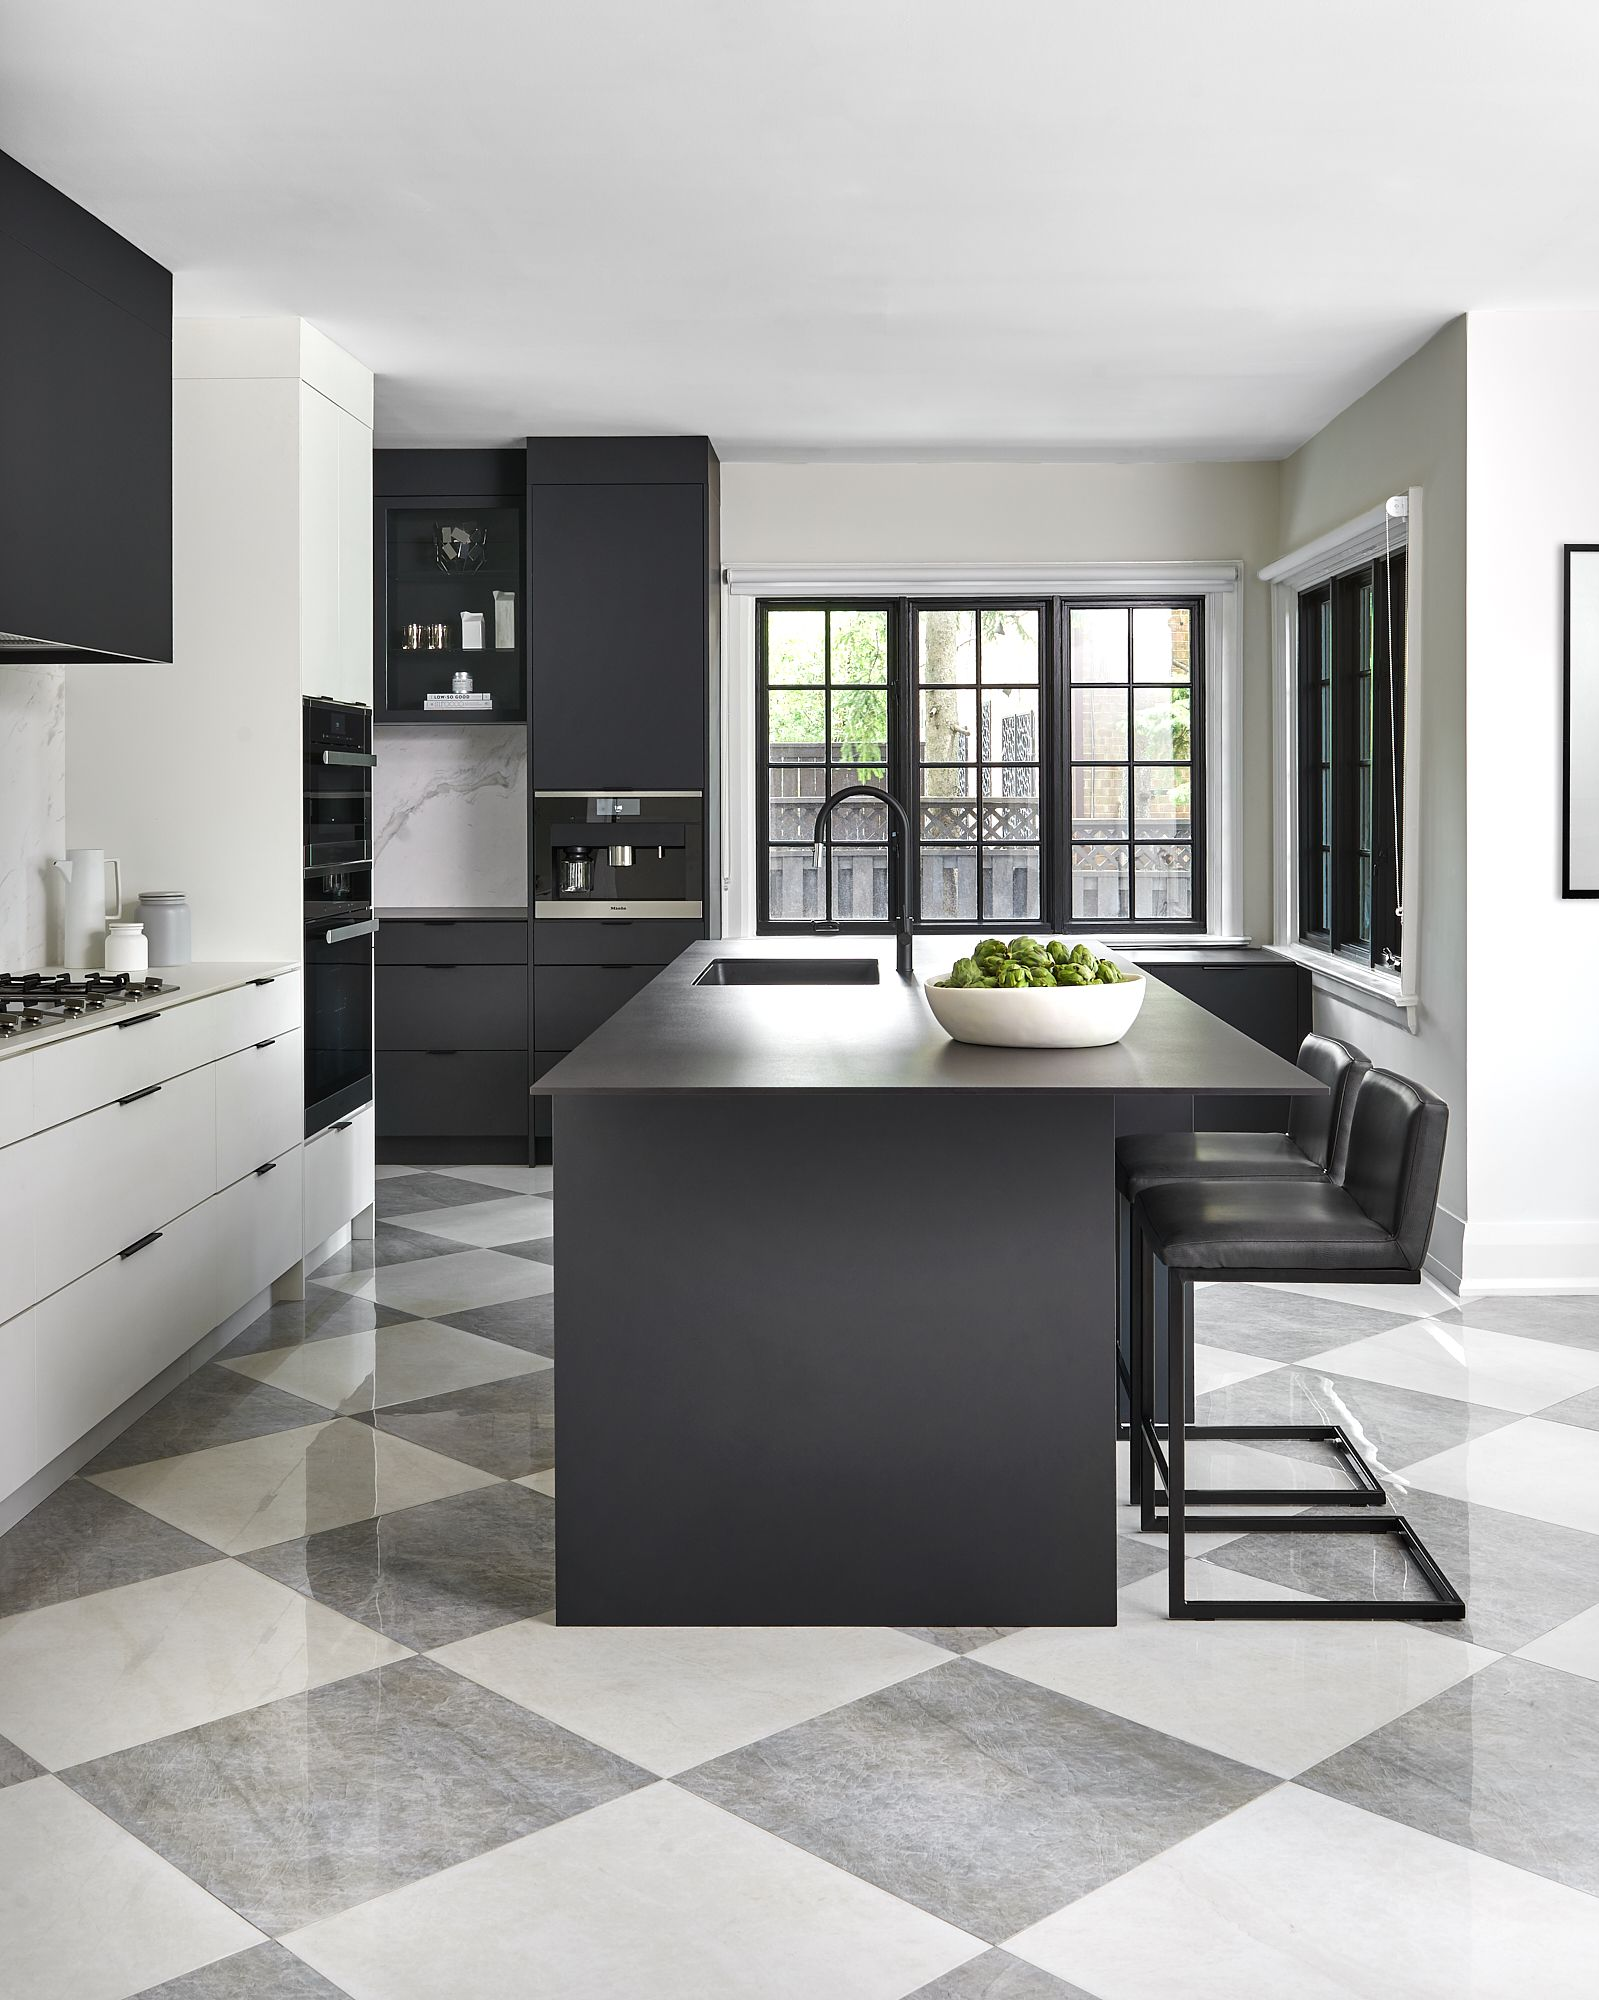 Black And White Kitchen With Checkered Flooring White Tile